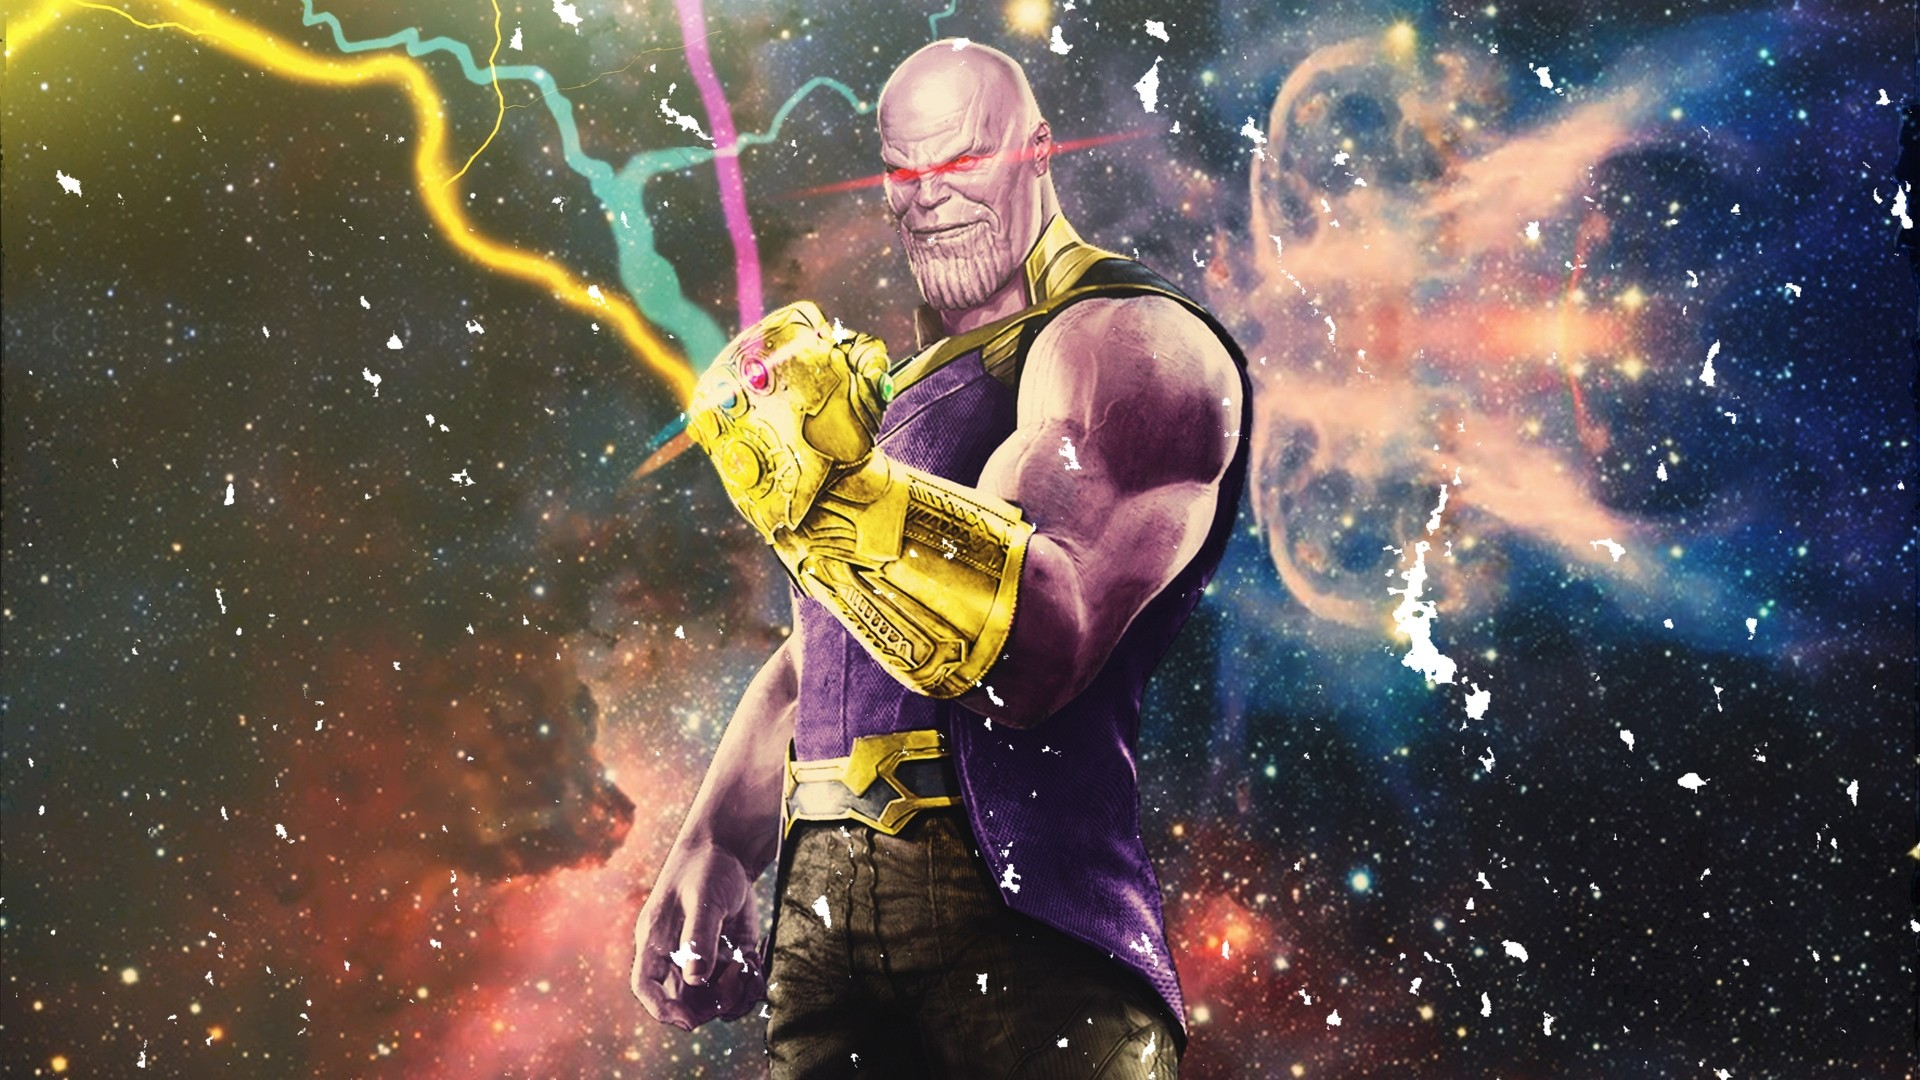 Thanos HD Wallpaper